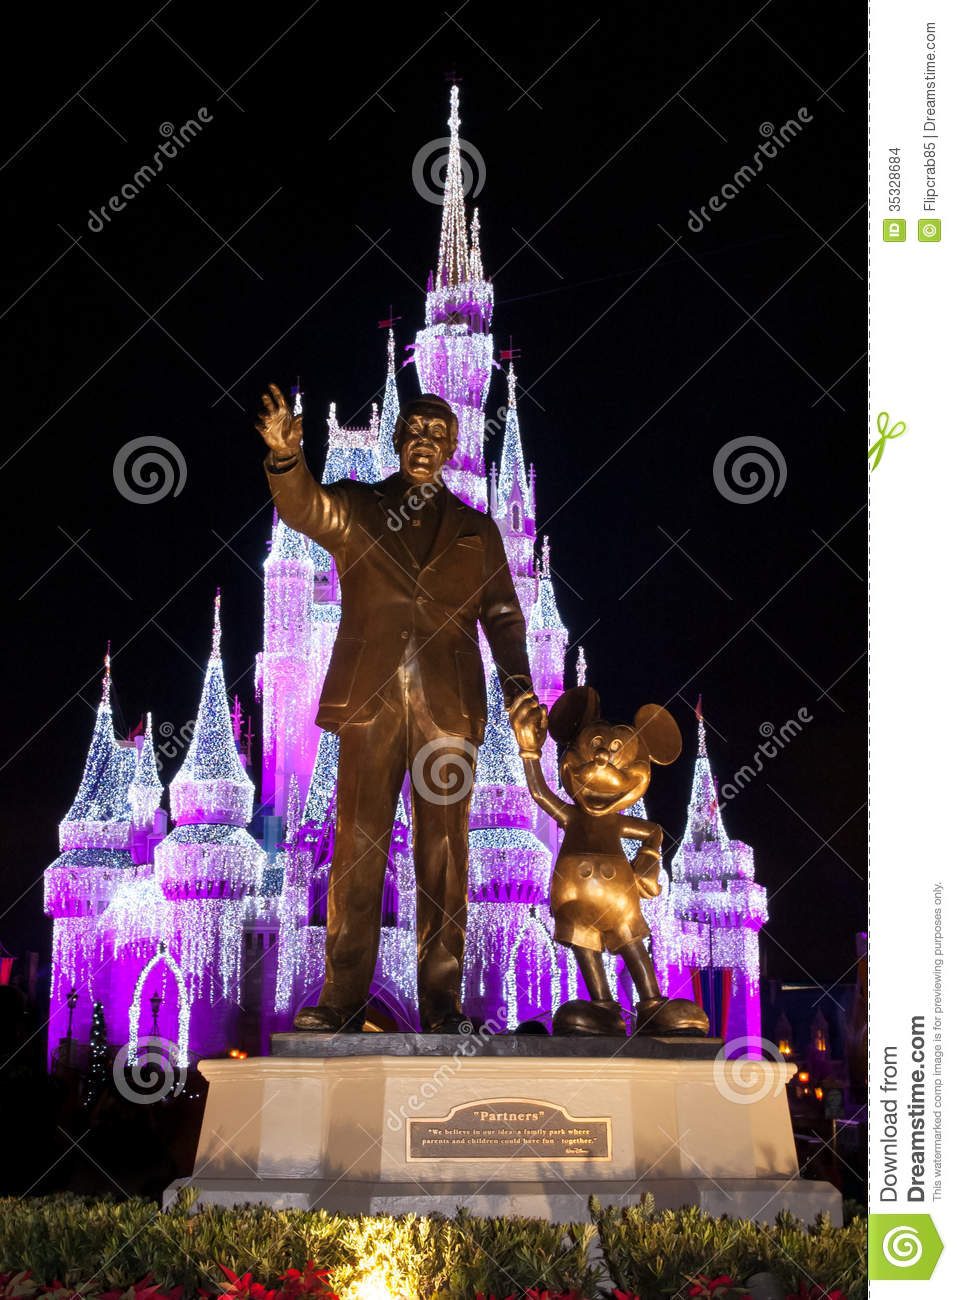 Walt Disney World Partners Statue Editorial Stock Image